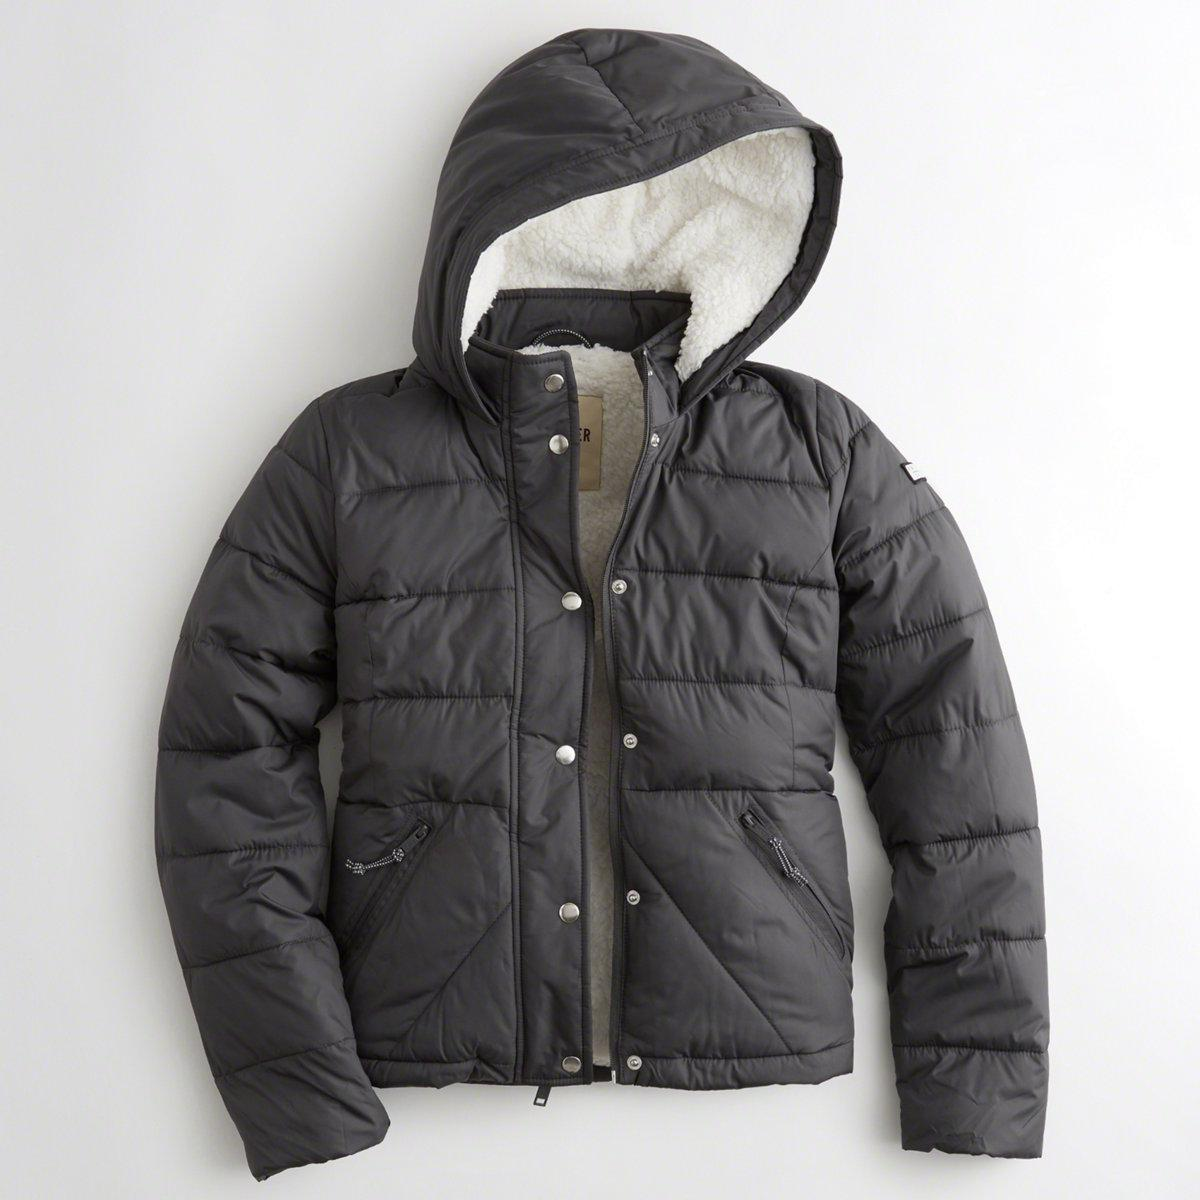 6eca773cb93c Lyst - Hollister Girls Sherpa-lined Puffer Jacket From Hollister in Gray